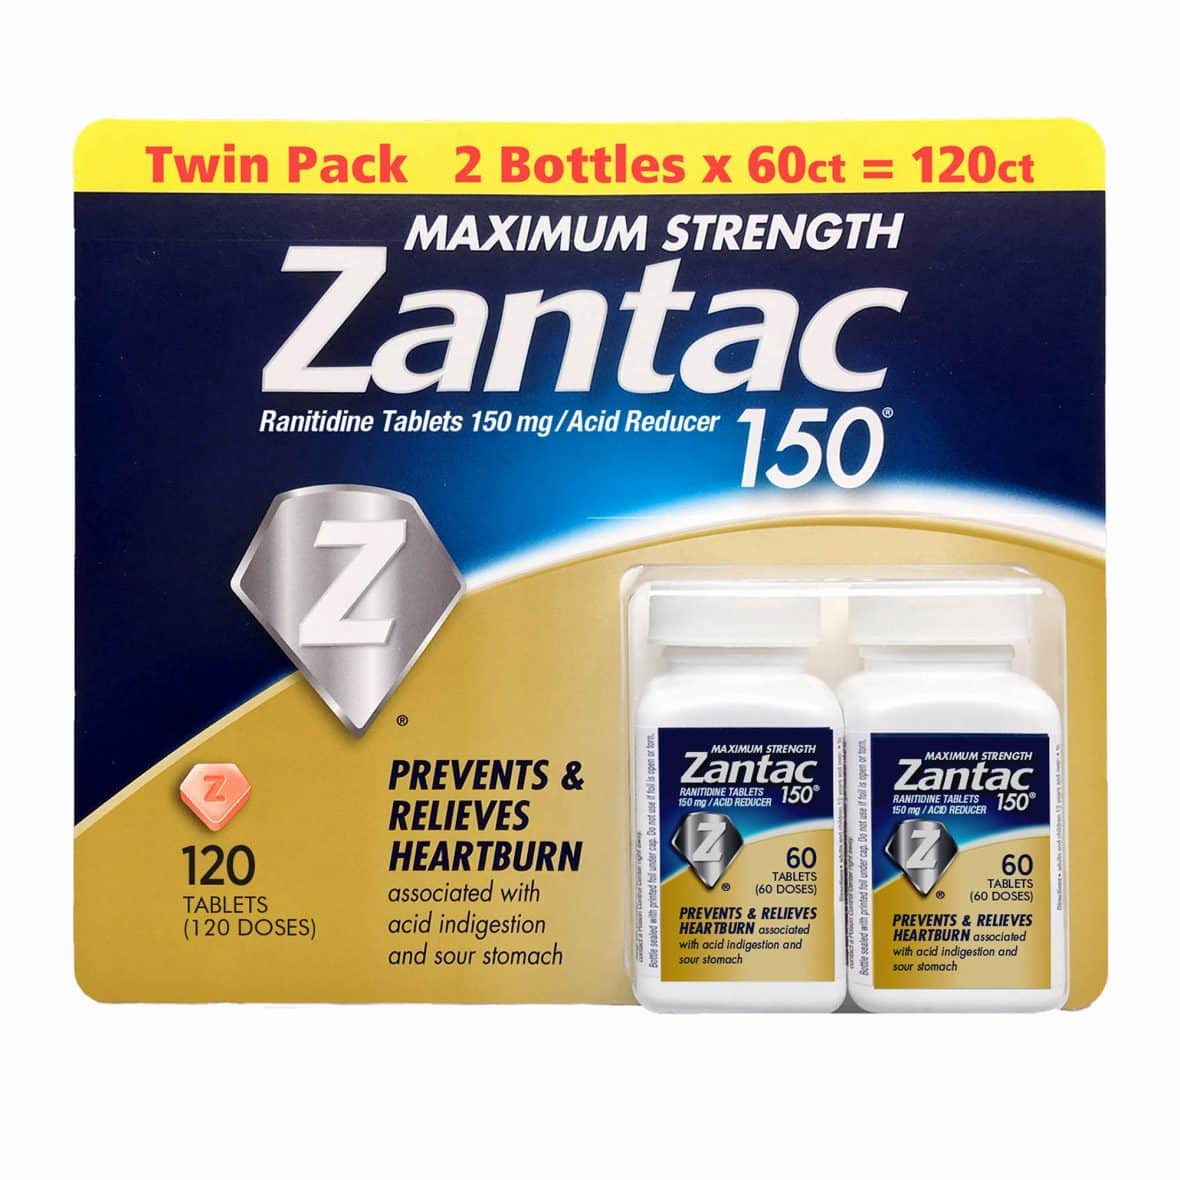 image about Zantac Printable Coupon named $3.00 off Zantac Printable Coupon My BJs Wholesale Club